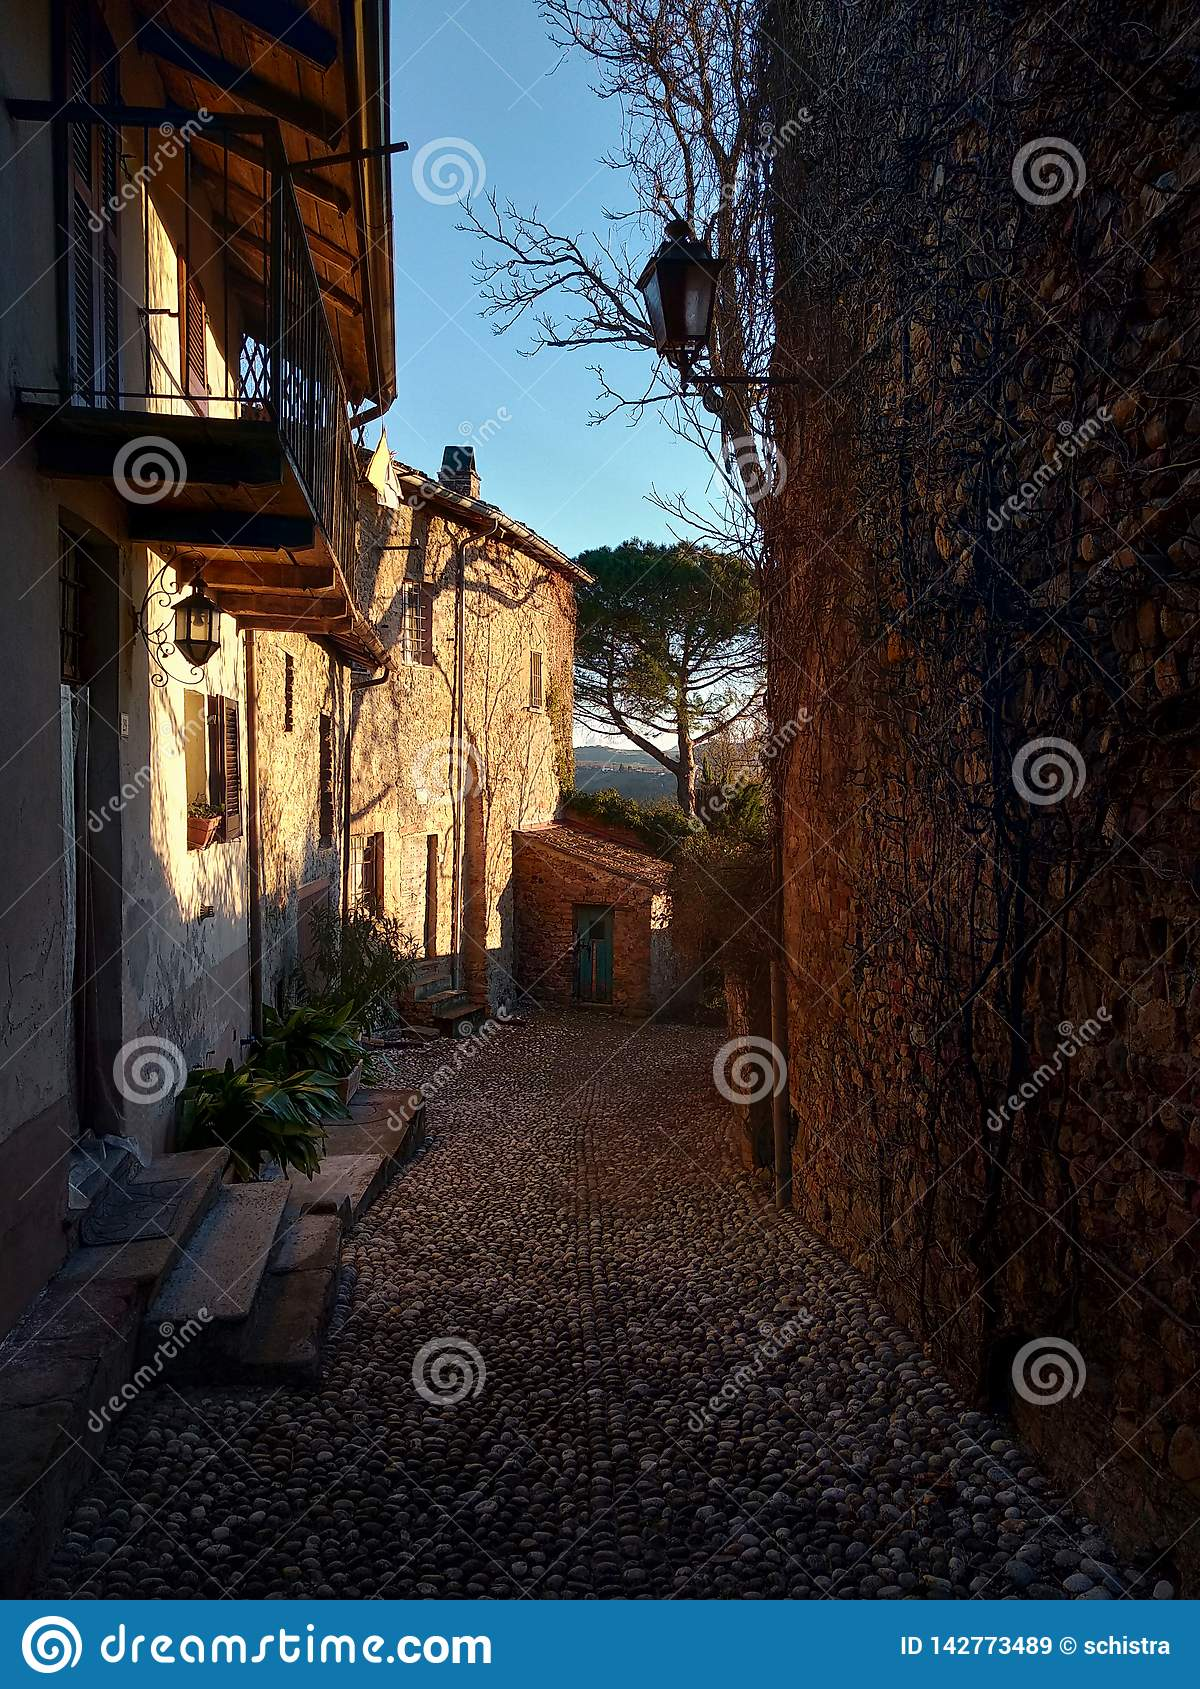 Street in a village on the hills in Italy. Nazzano village in Lombardy